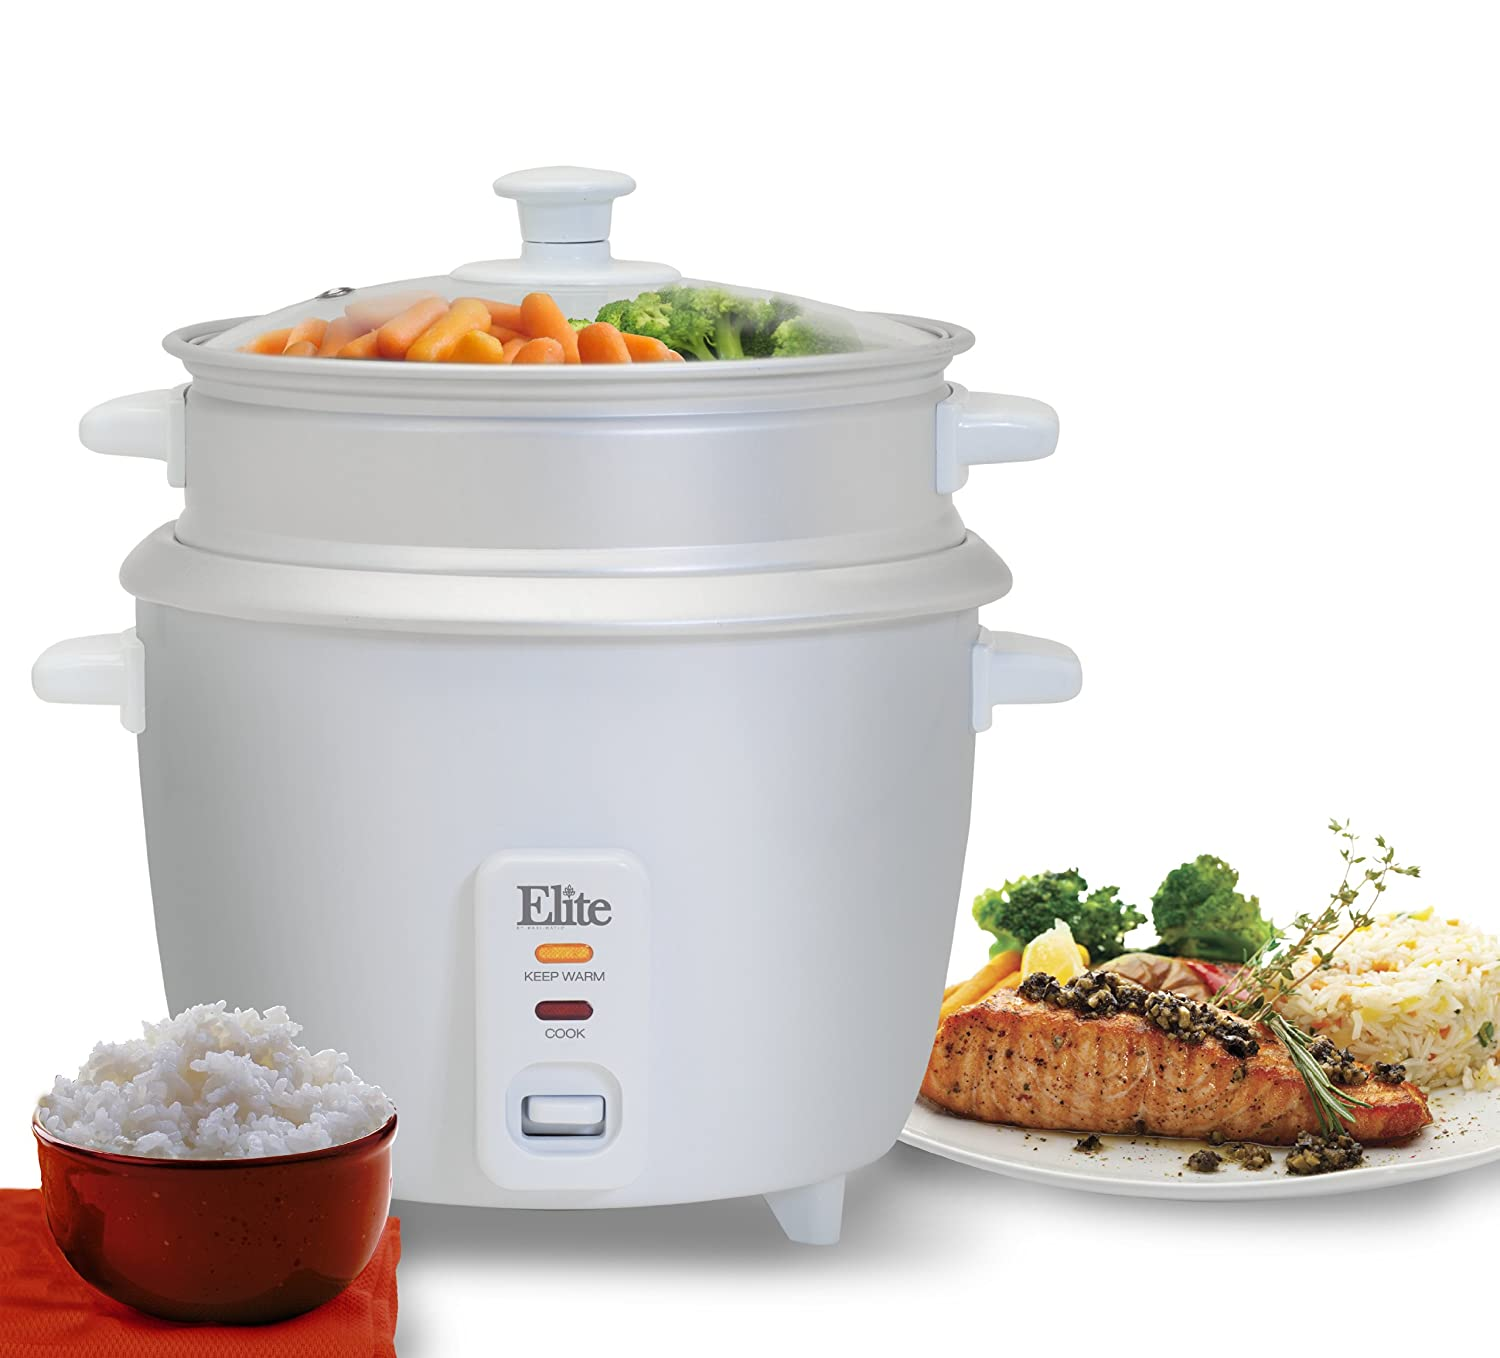 Amazon.com: Elite Gourmet ERC-003ST Rice Cooker with Steamer Basket, Glass  Lid, One-Touch Switch with Automatic Keep Warm Function, Makes Soups,  Stews, ...